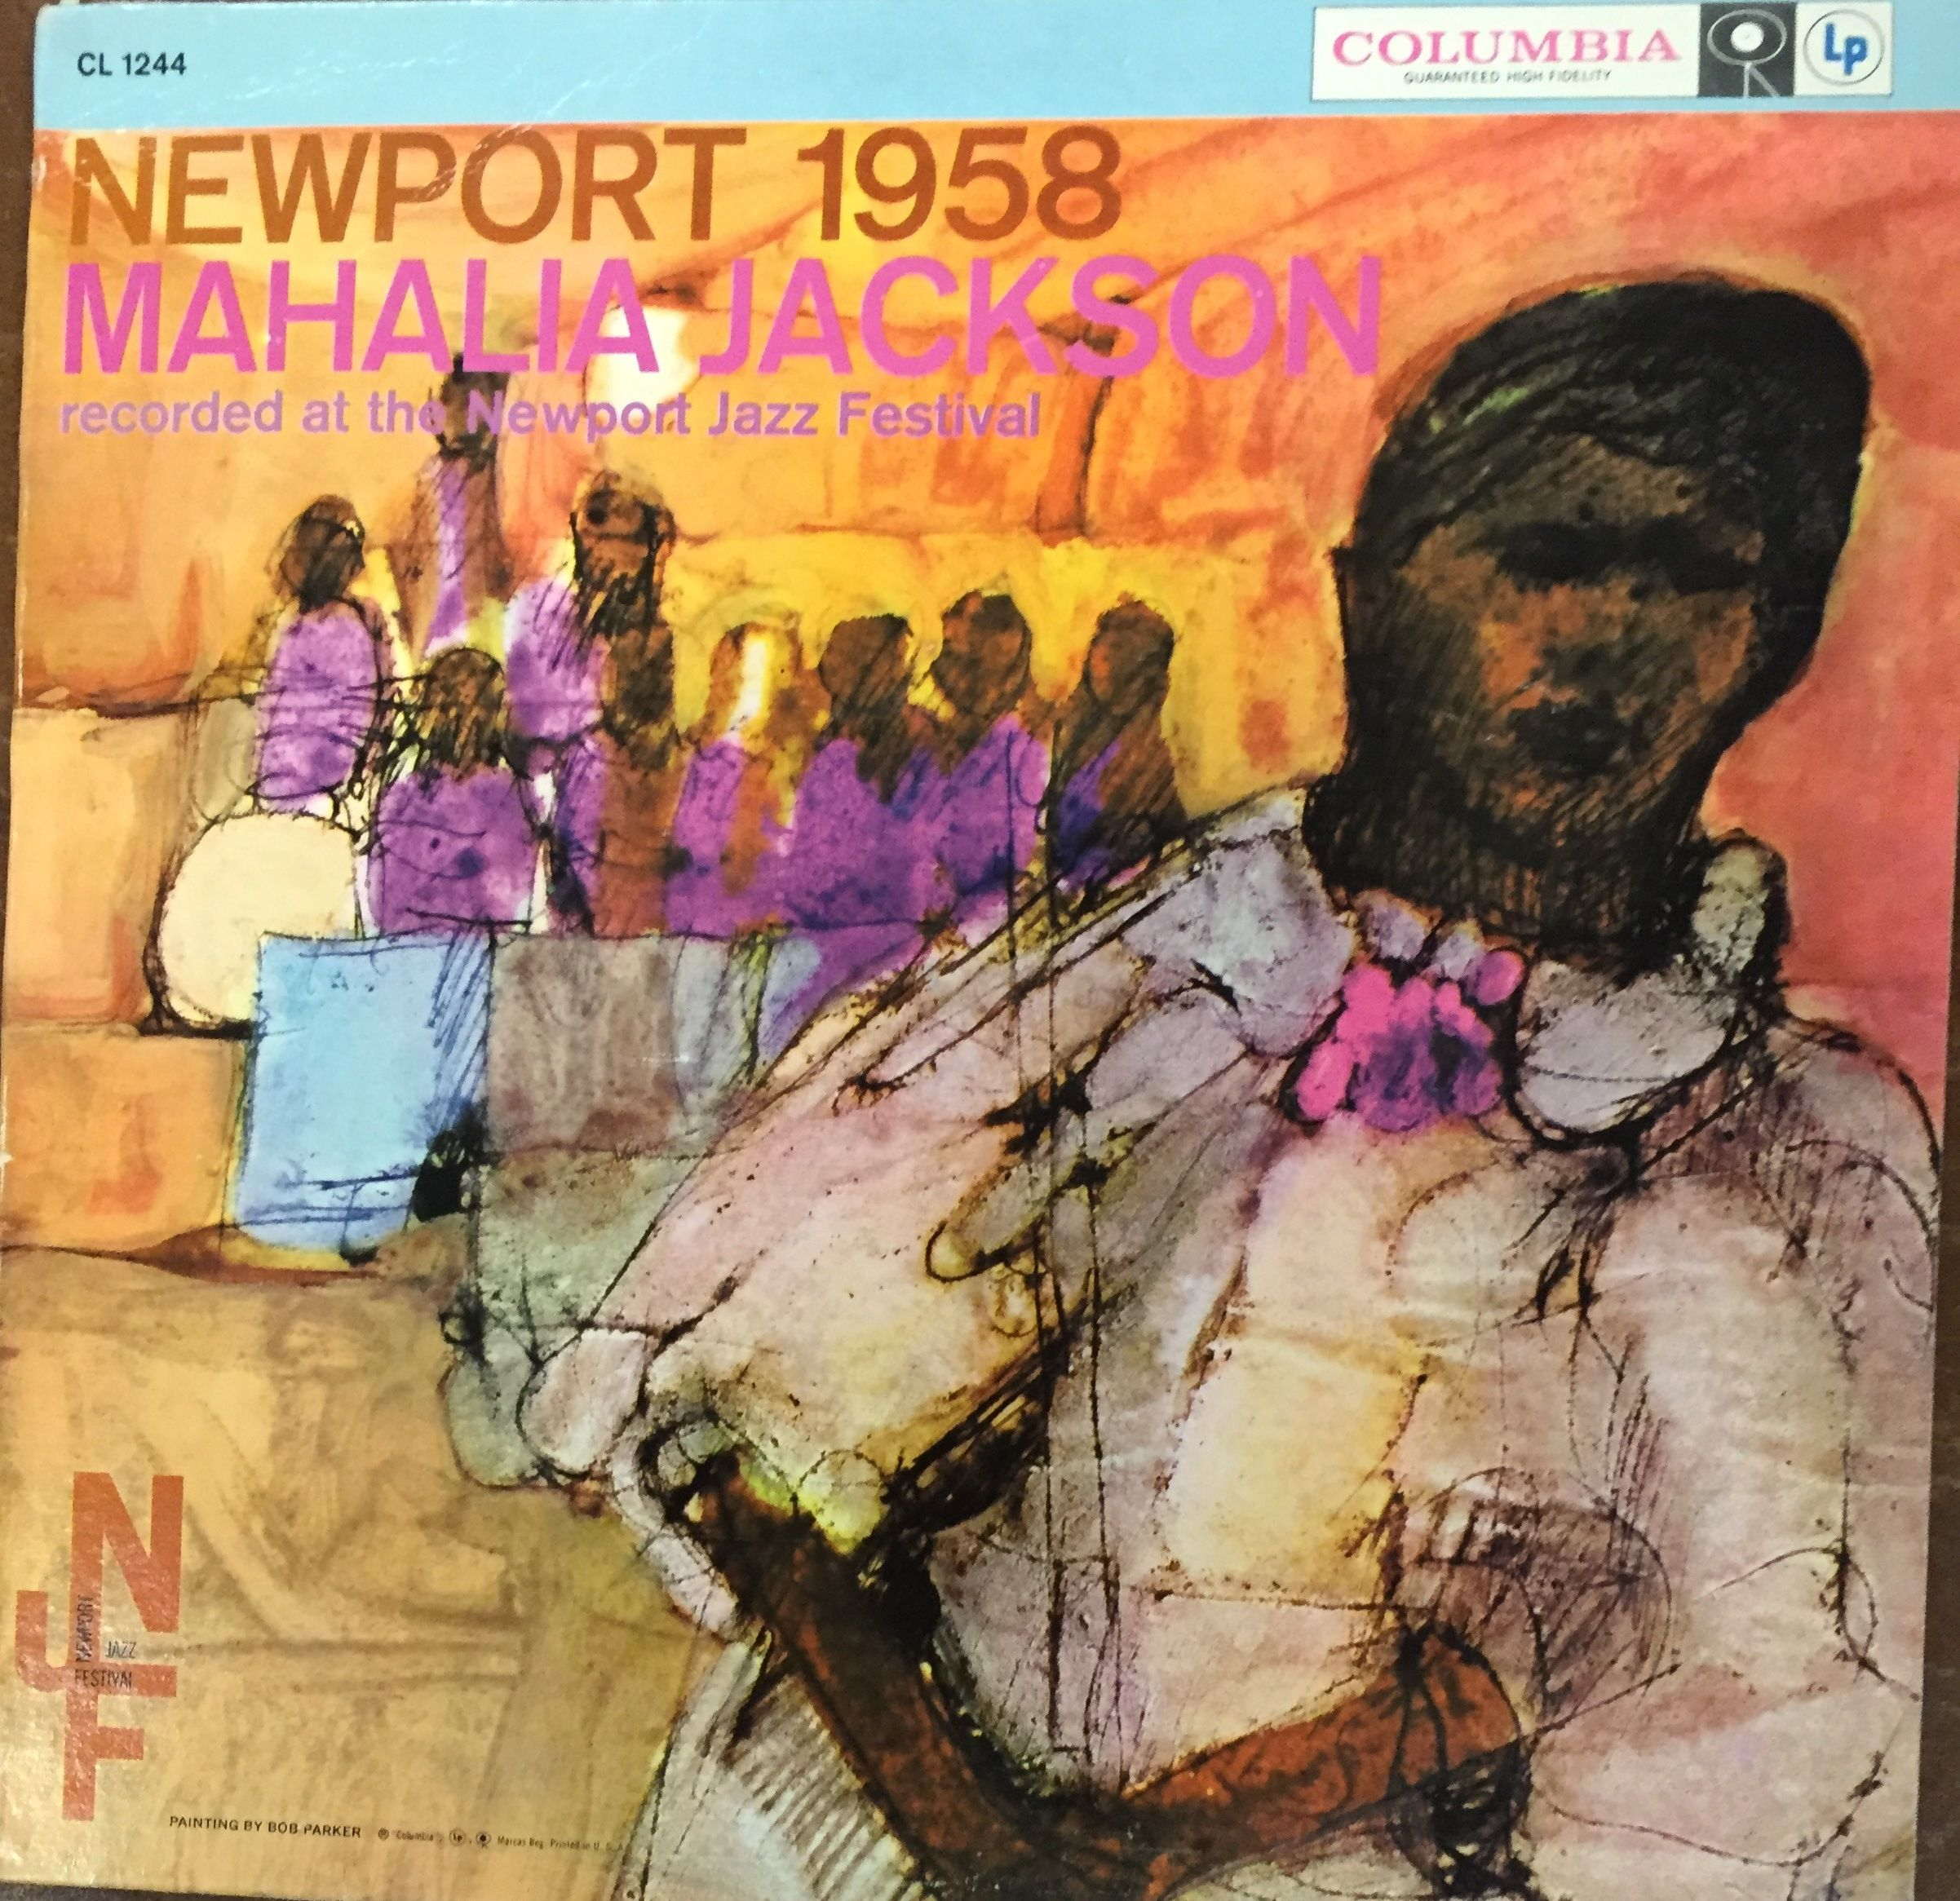 Mahalia Jackson At Newport 1958 Columbia Cl 1277 Not Exactly Jazz But One Of Several Covers In A Newpor Mahalia Jackson Newport Jazz Festival Jazz Festival